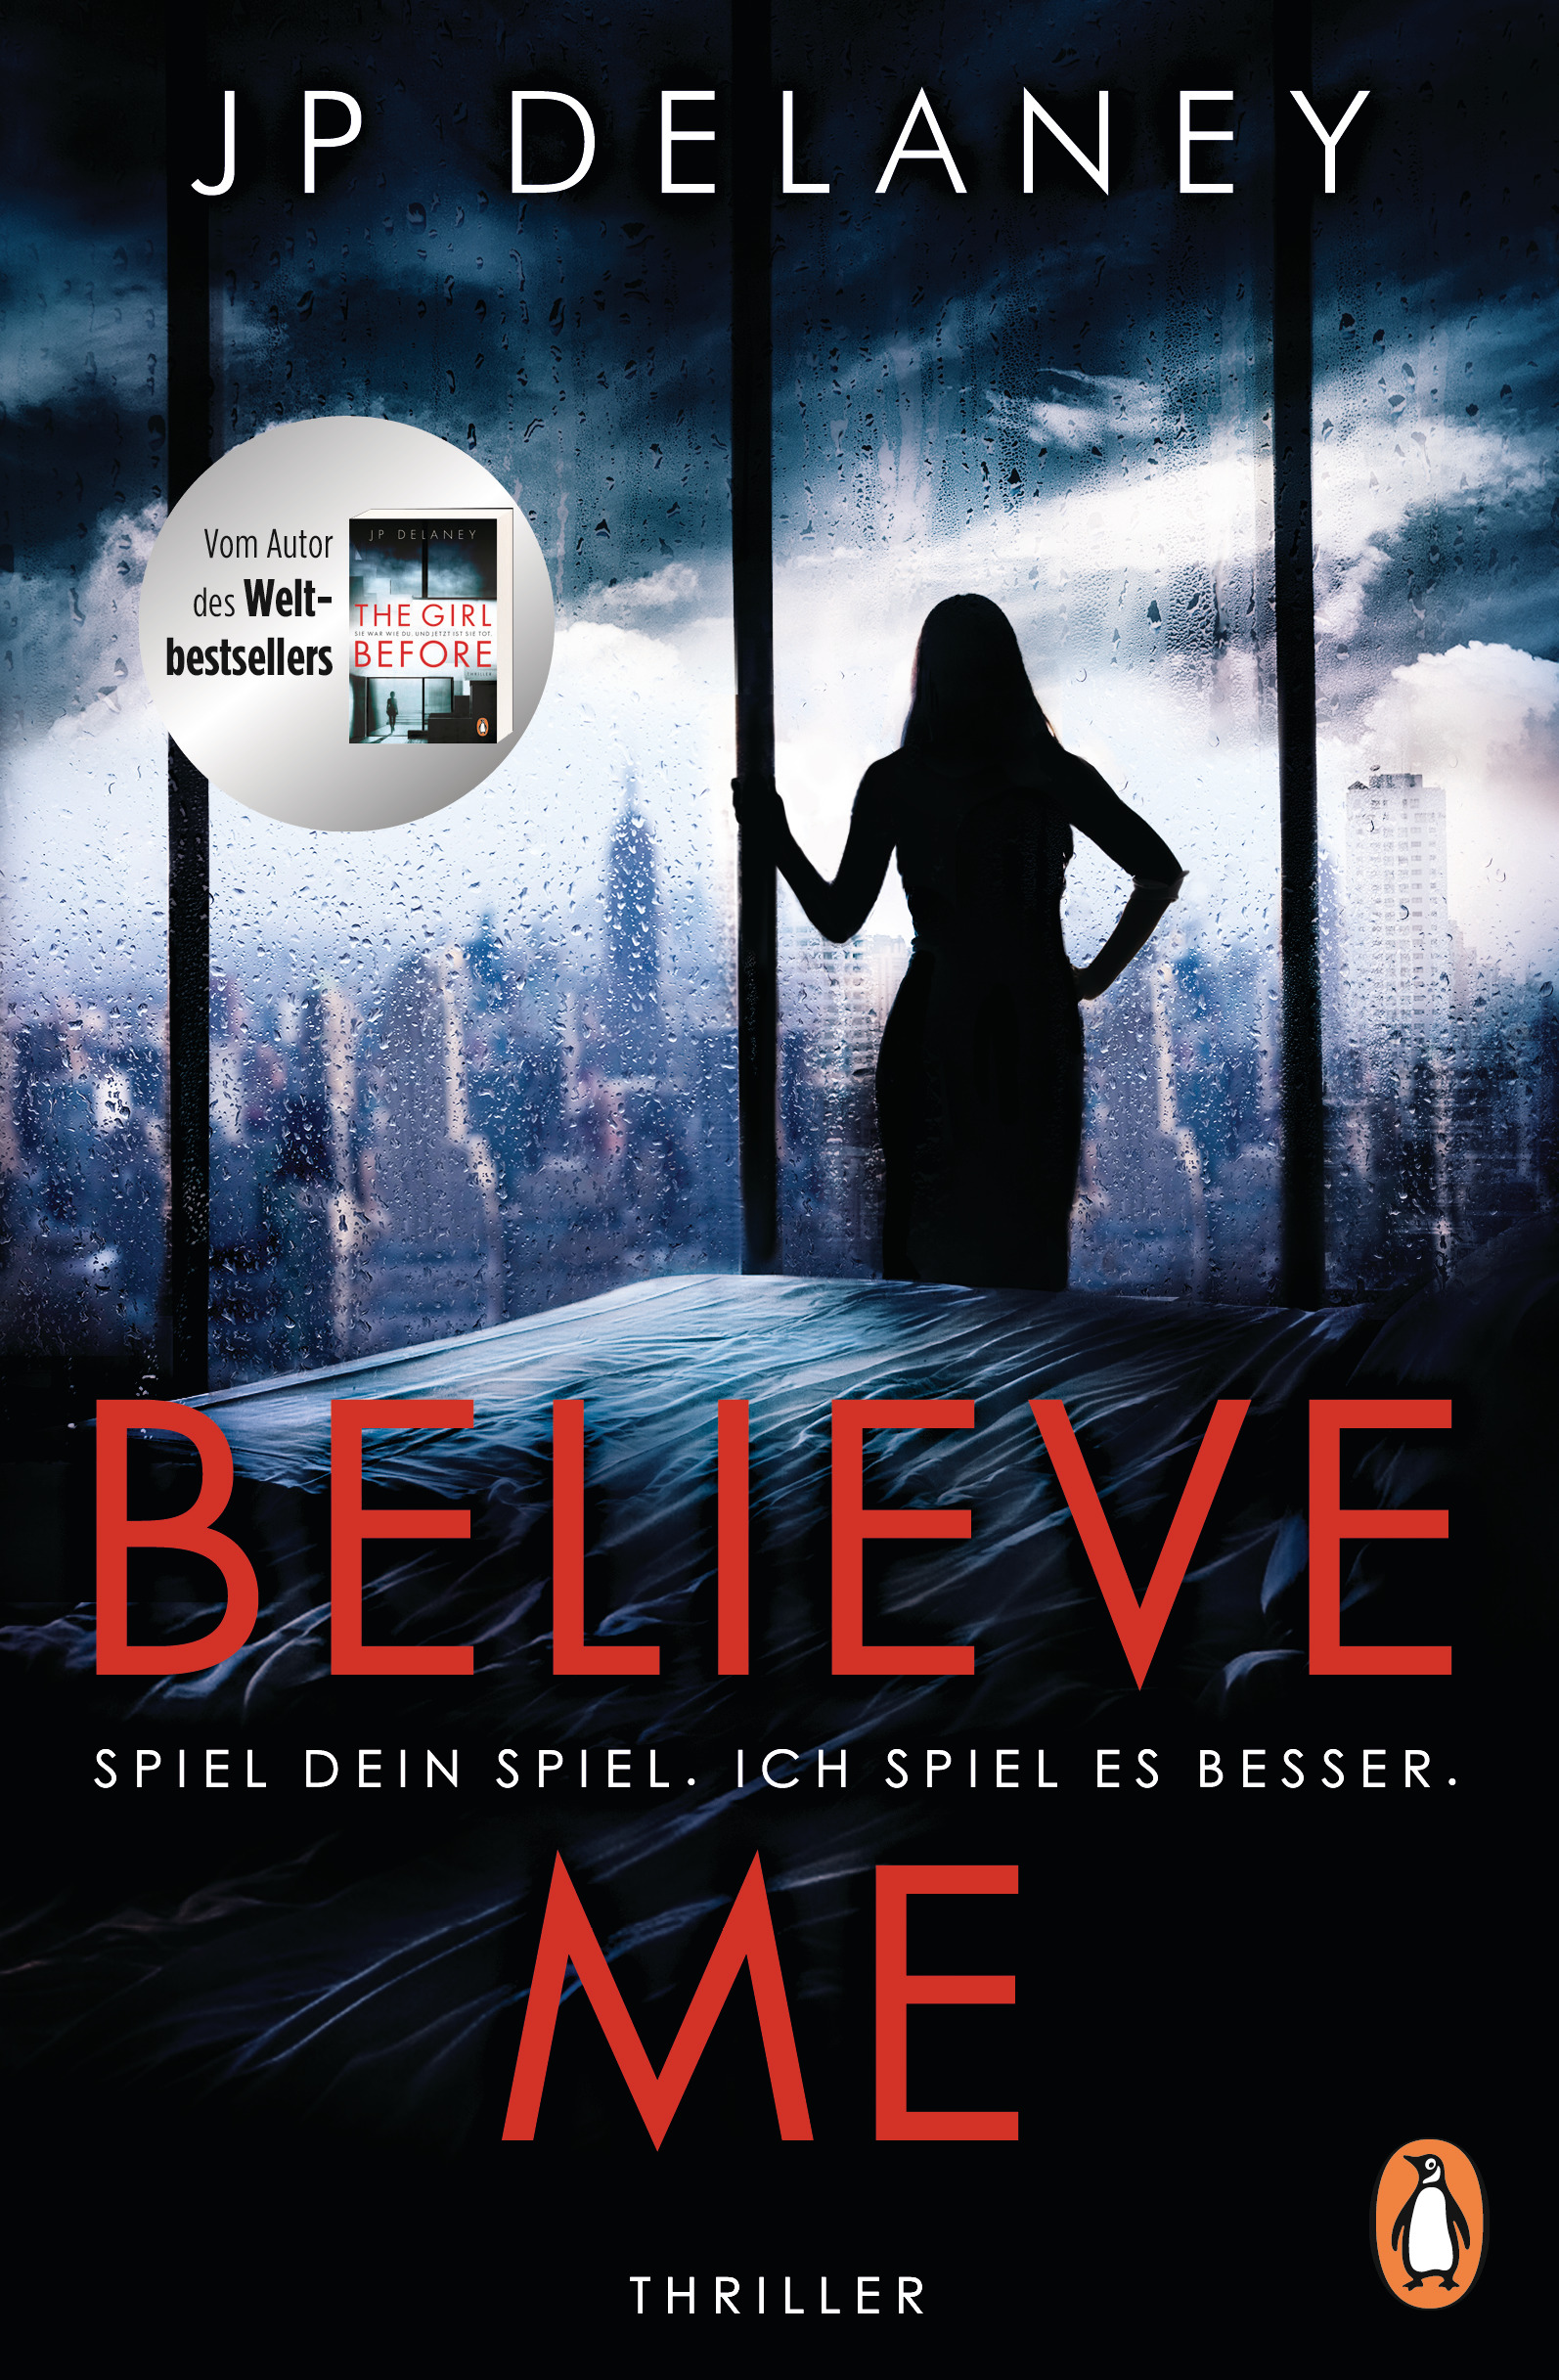 https://www.randomhouse.de/content/edition/covervoila_hires/Delaney_JPBelieve_Me_188540.jpg